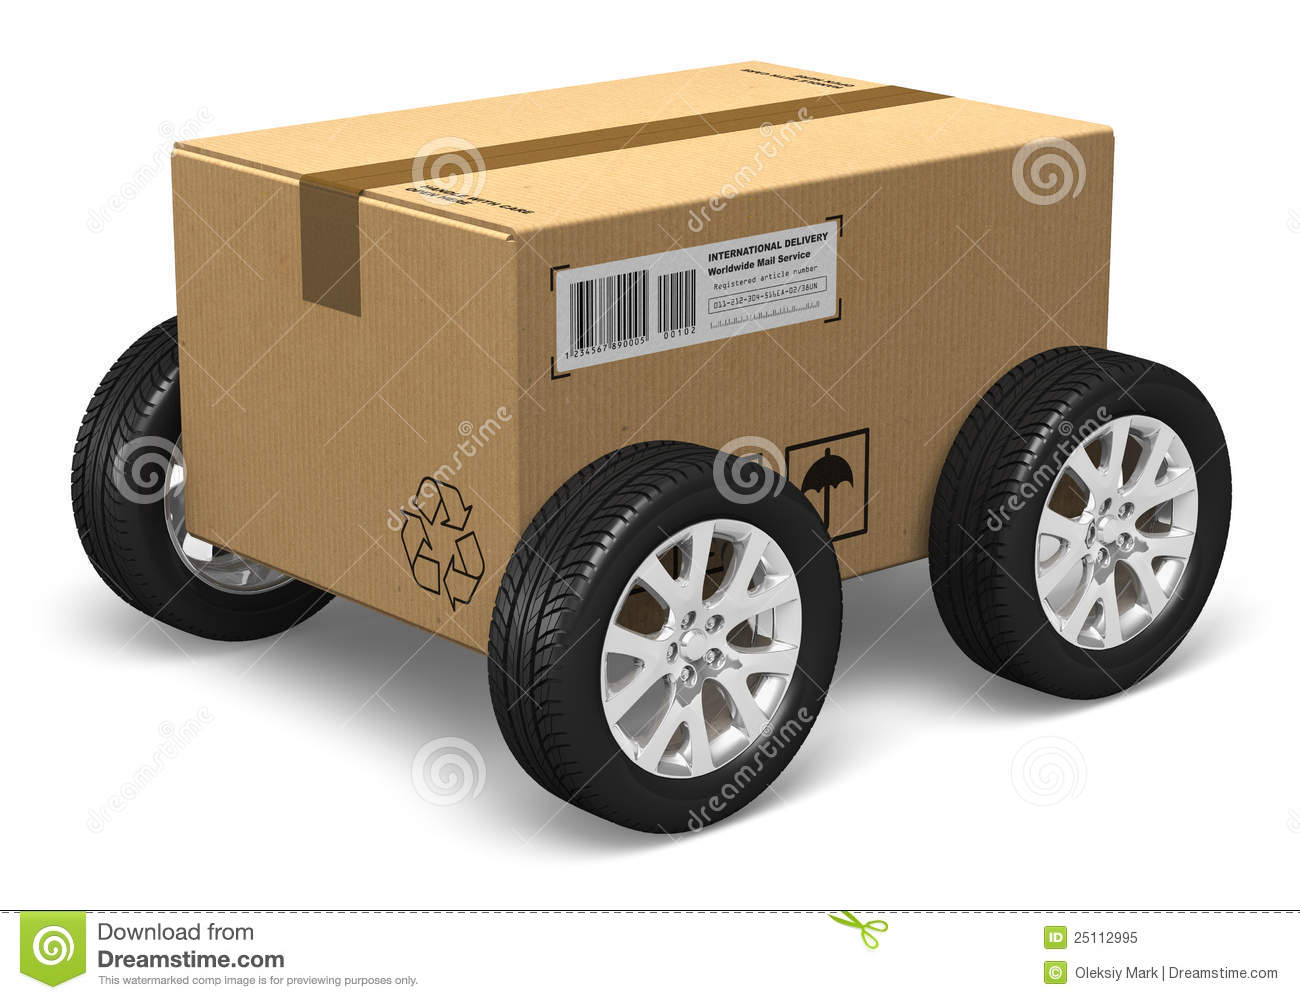 The estimated delivery information in your order may show an earlier date, and you may receive your order sooner or later depending on order processing factors and, in the case of standard shipping.